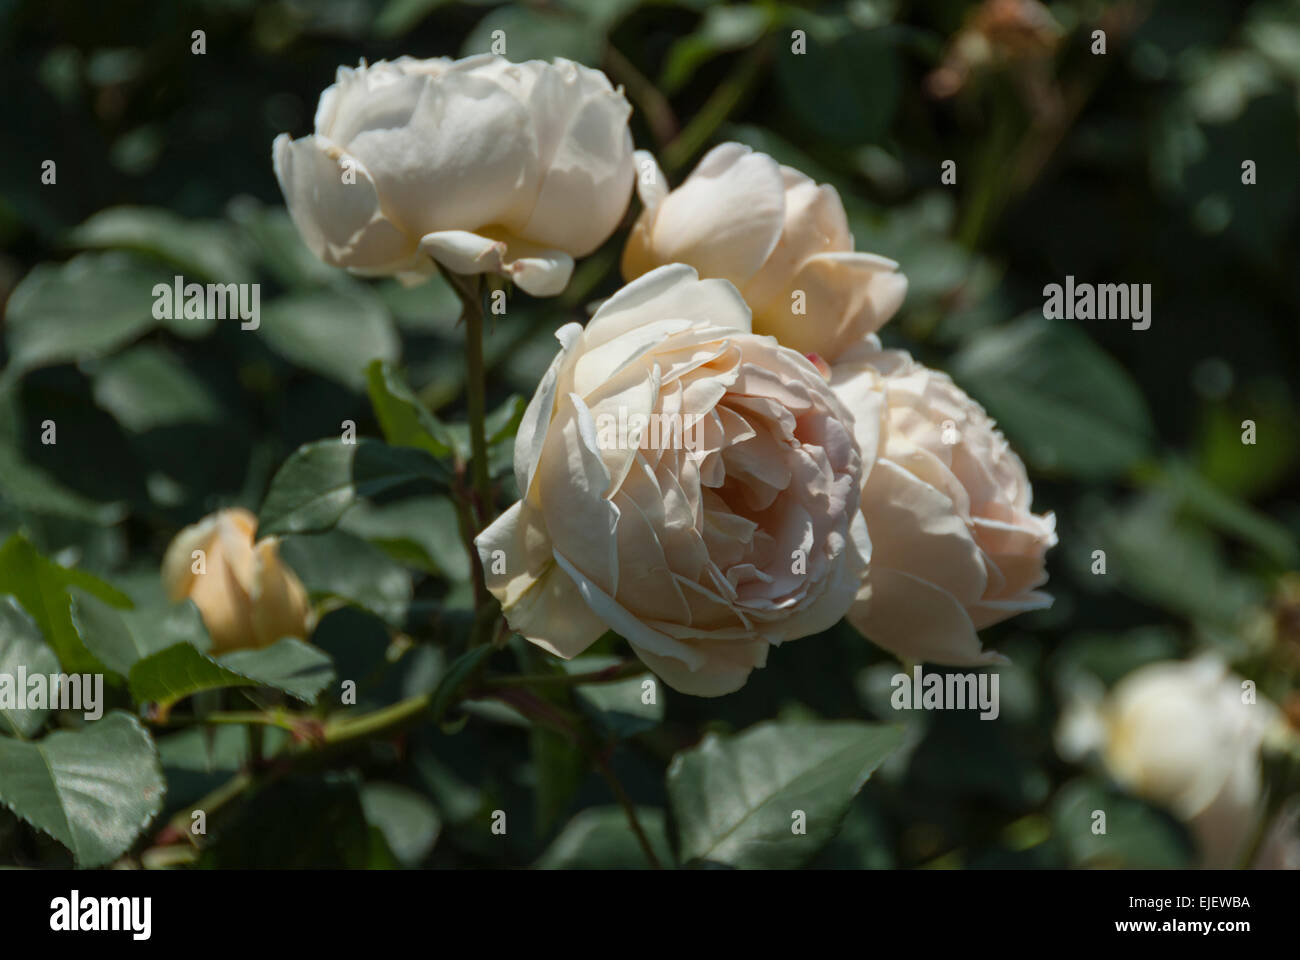 Jude the Obscure Rose in full bloom. - Stock Image